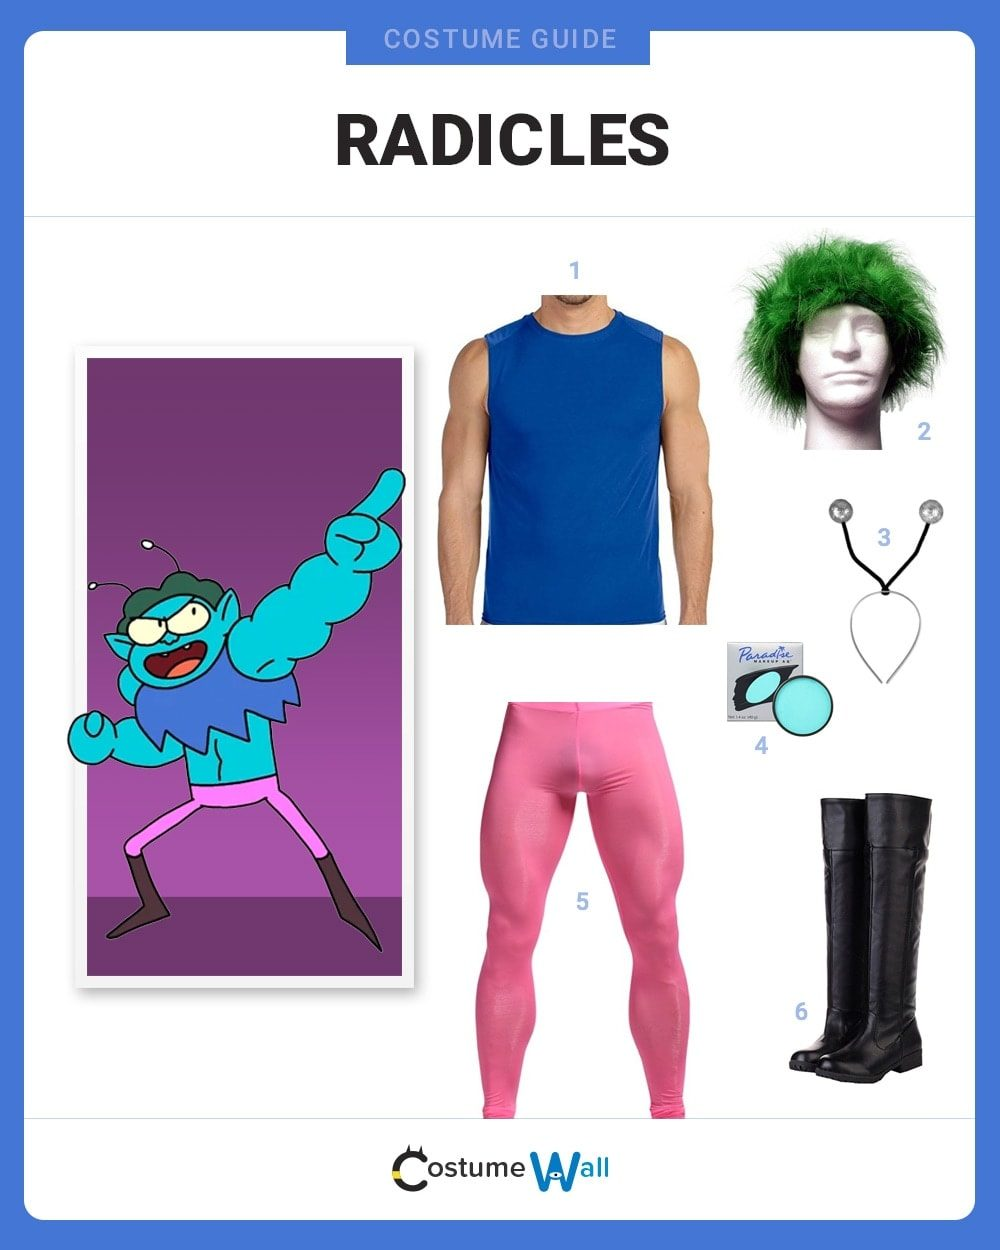 Radicles Costume Guide